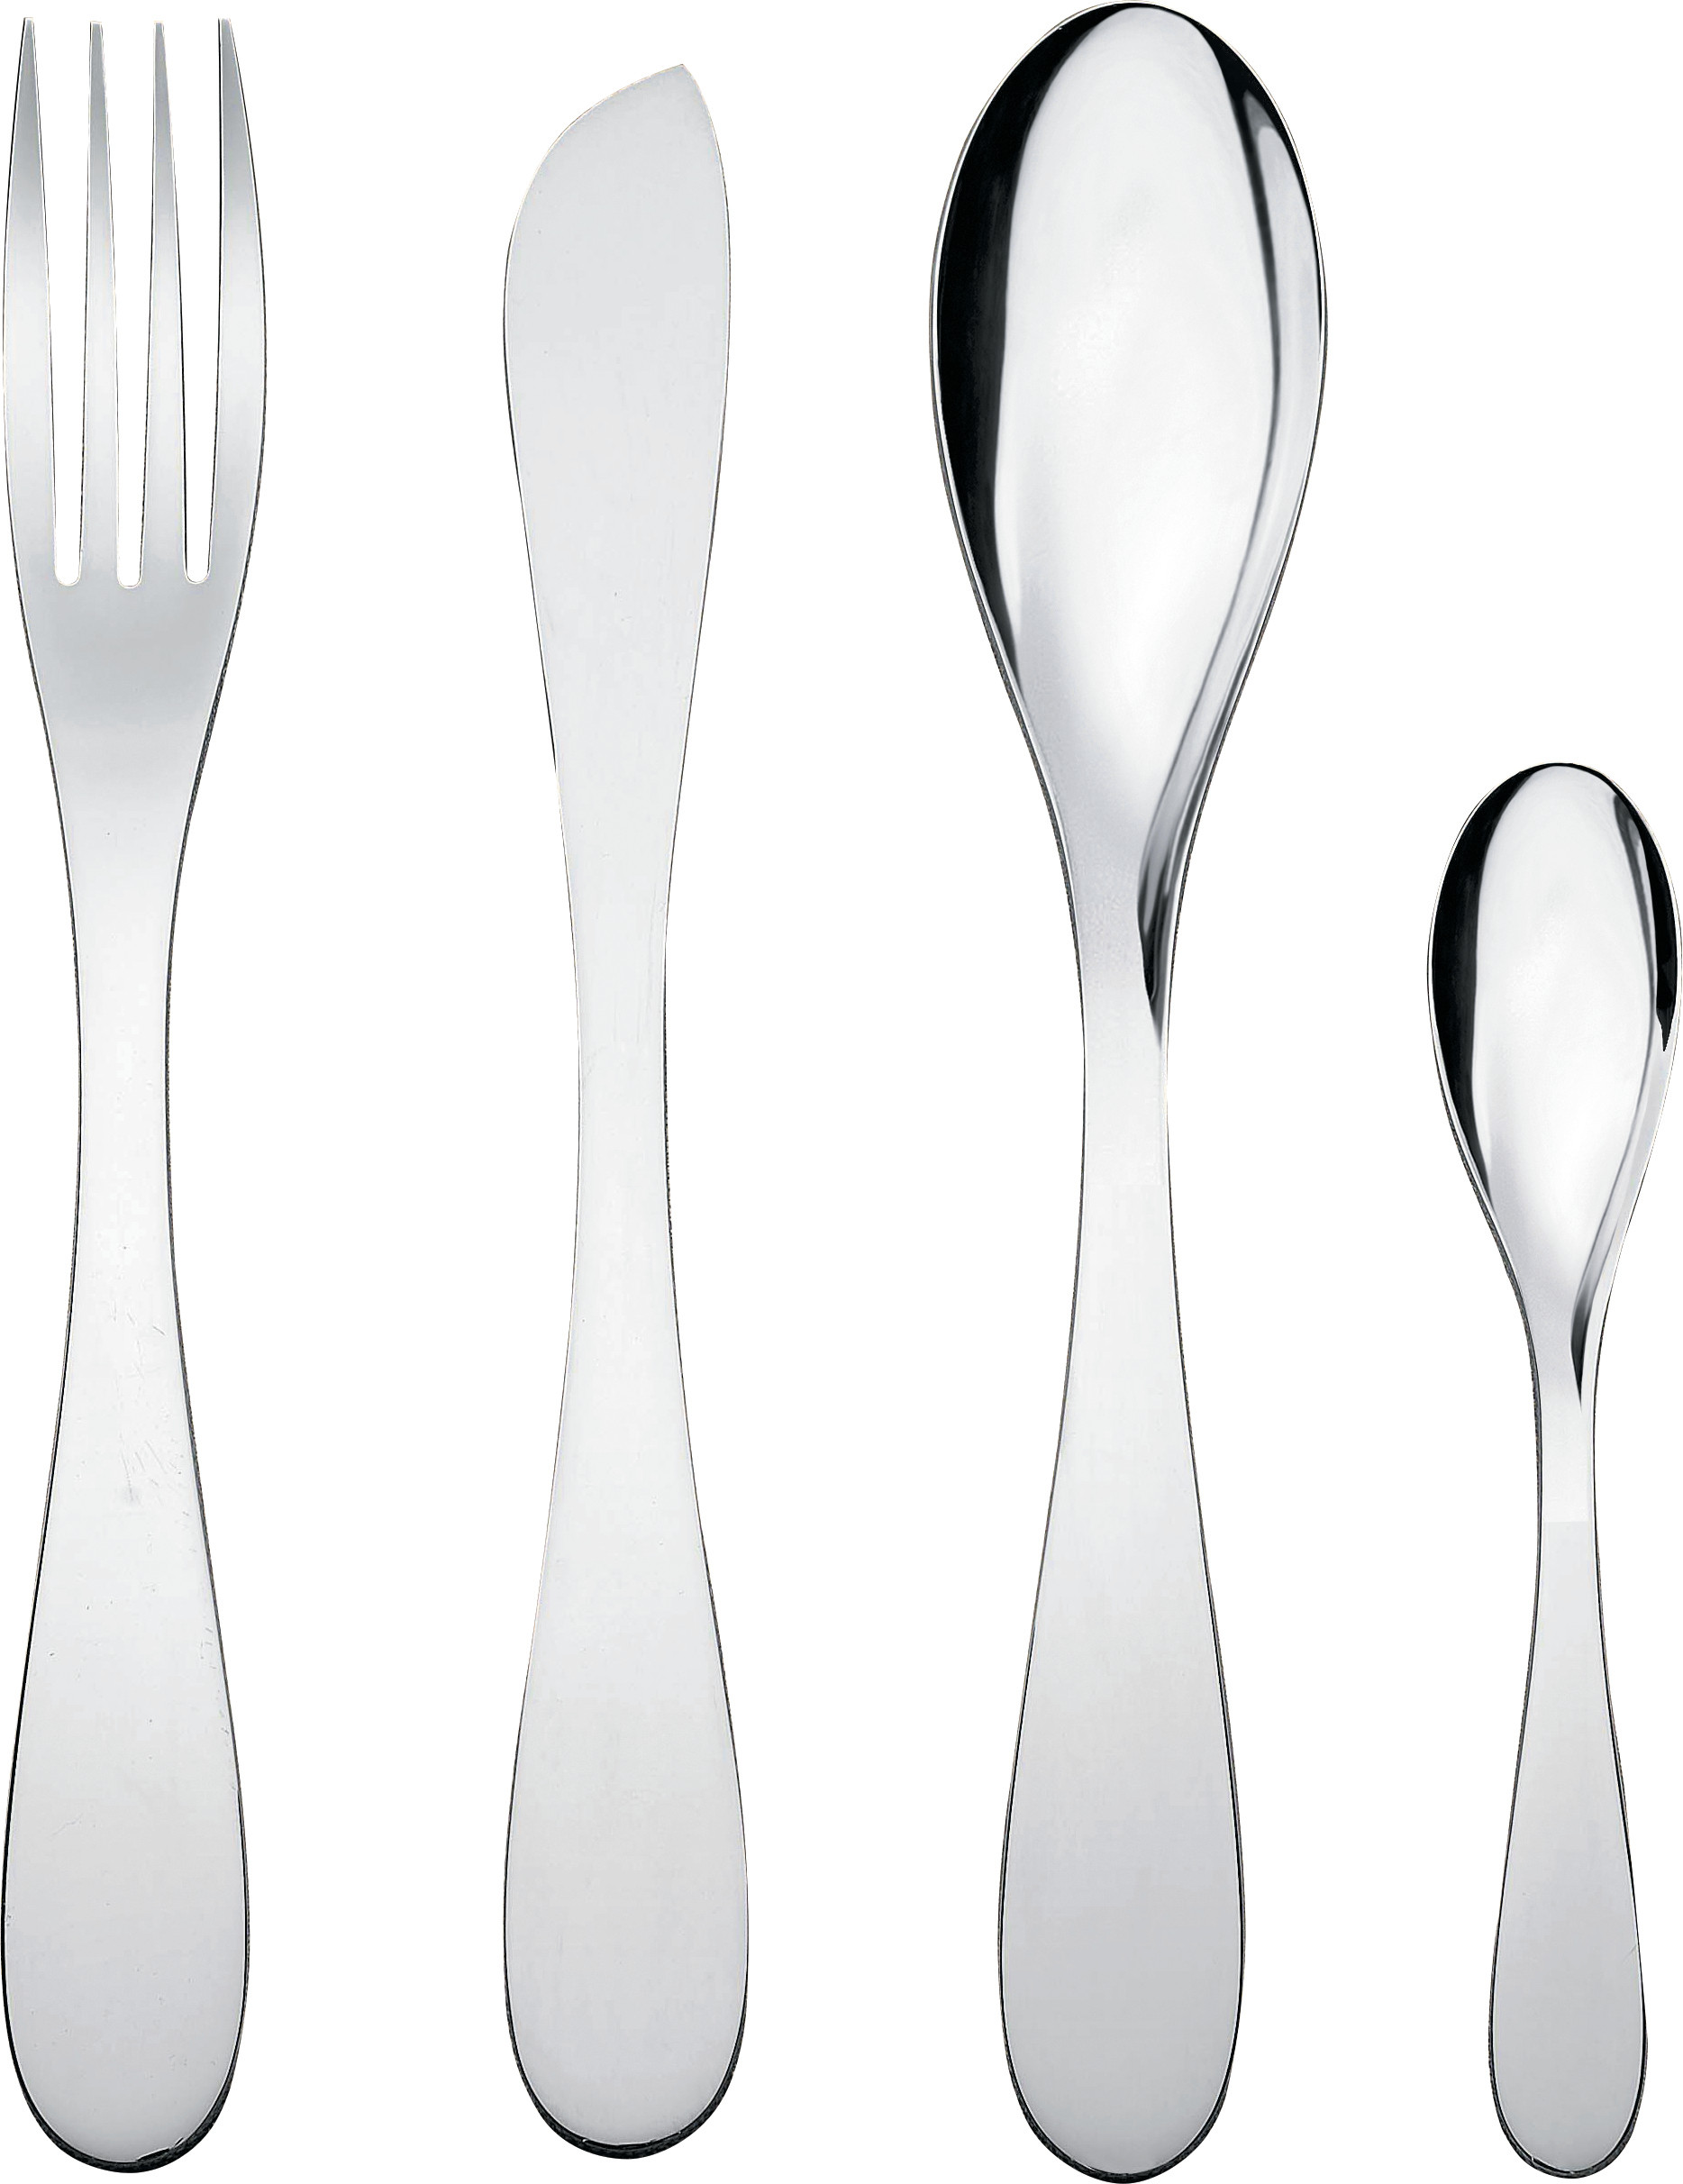 Alessi Silverware Alessi Eat It Cutlery Set 24 Piece